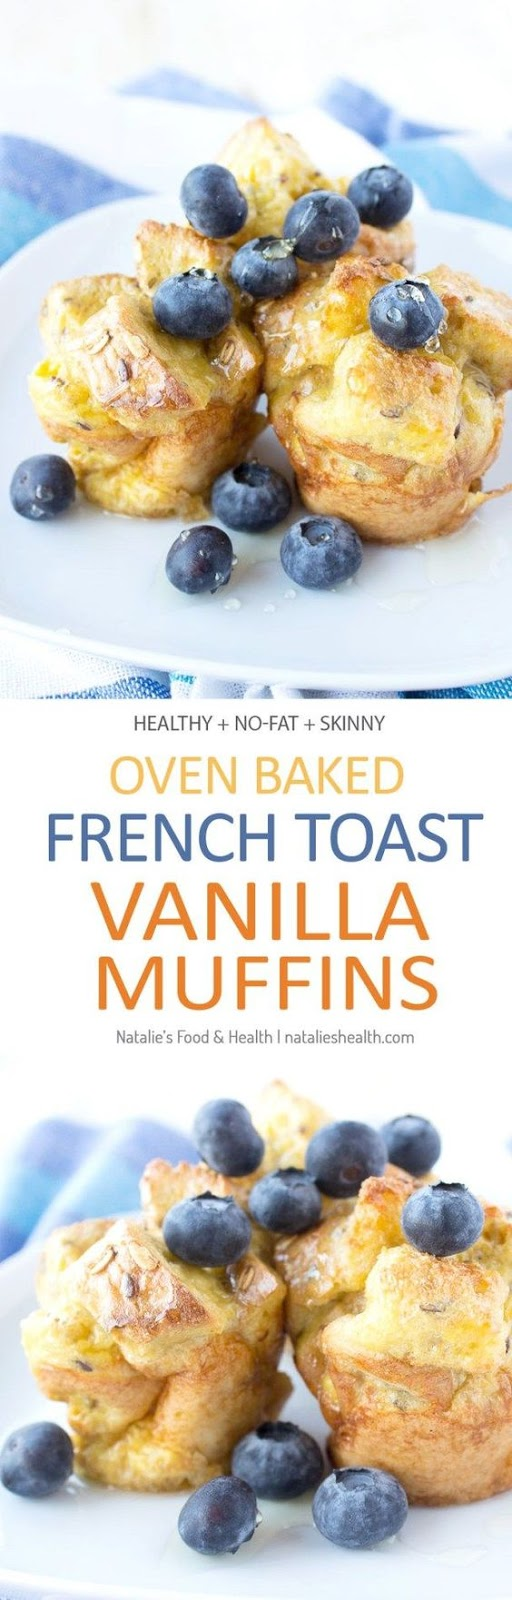 French Toast Vanilla Muffins